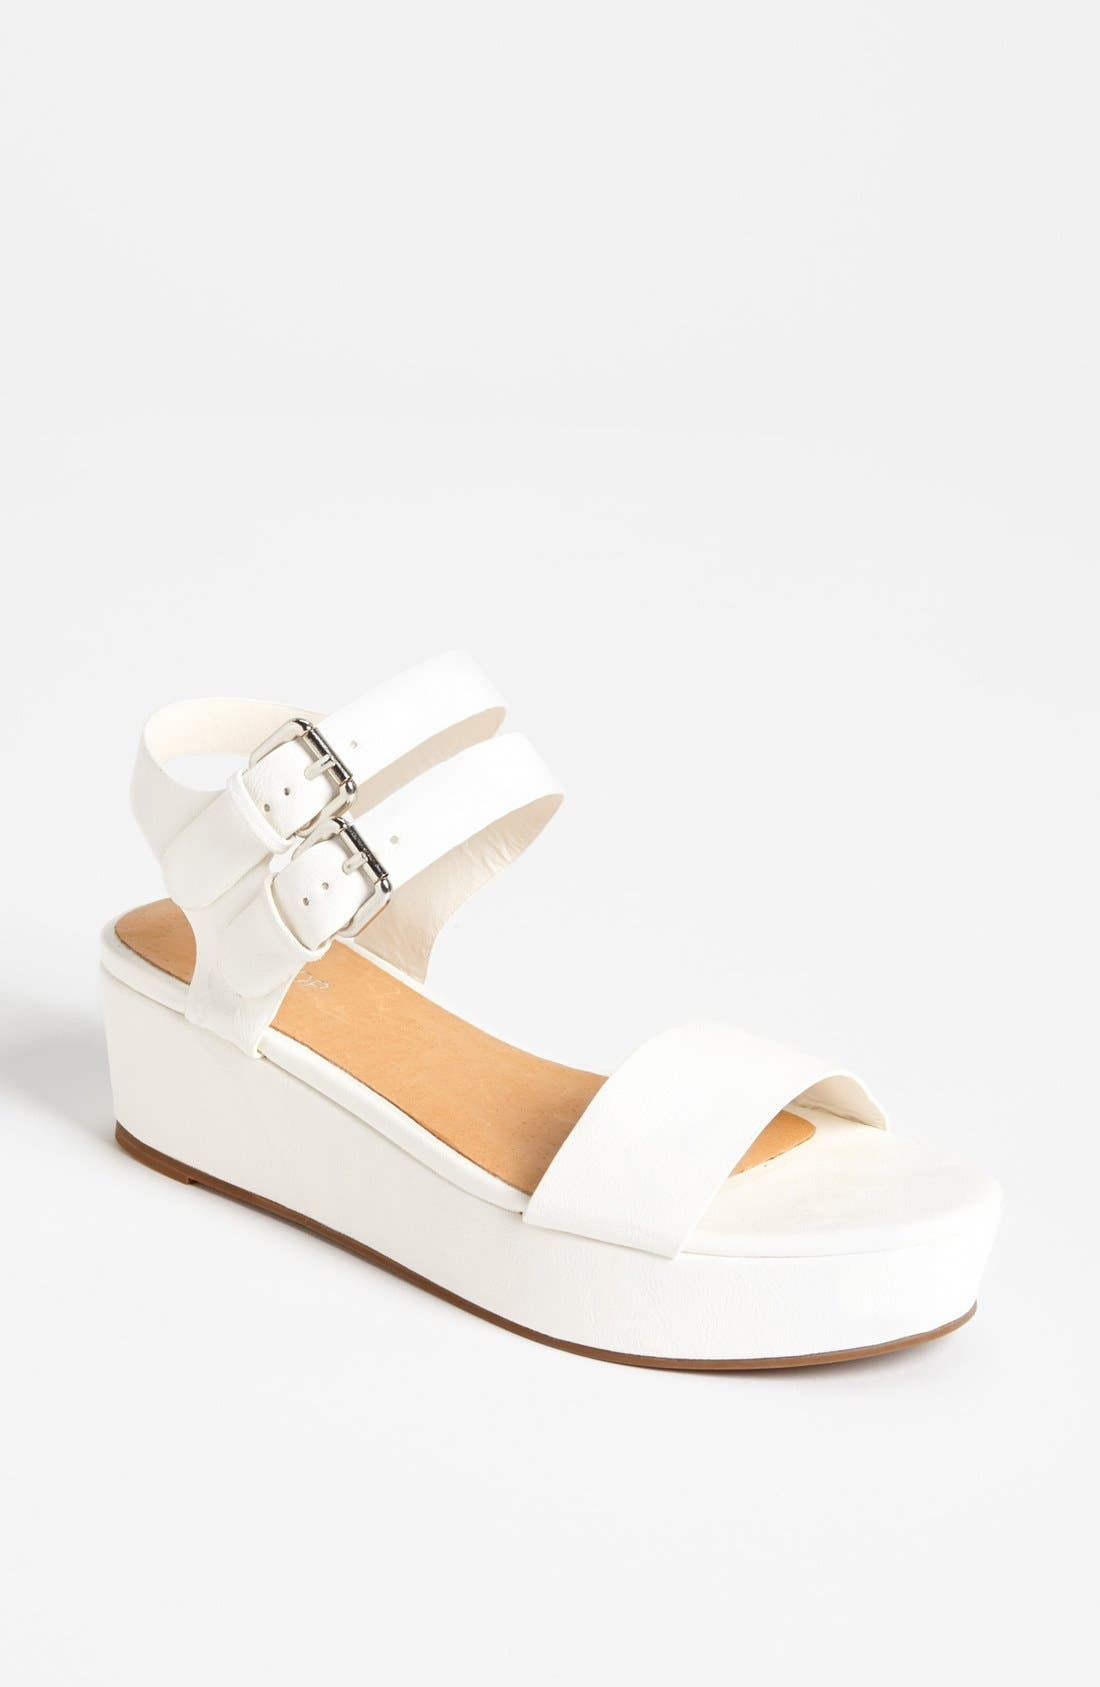 Alternate Image 1 Selected - Topshop 'Hanna' Sandal